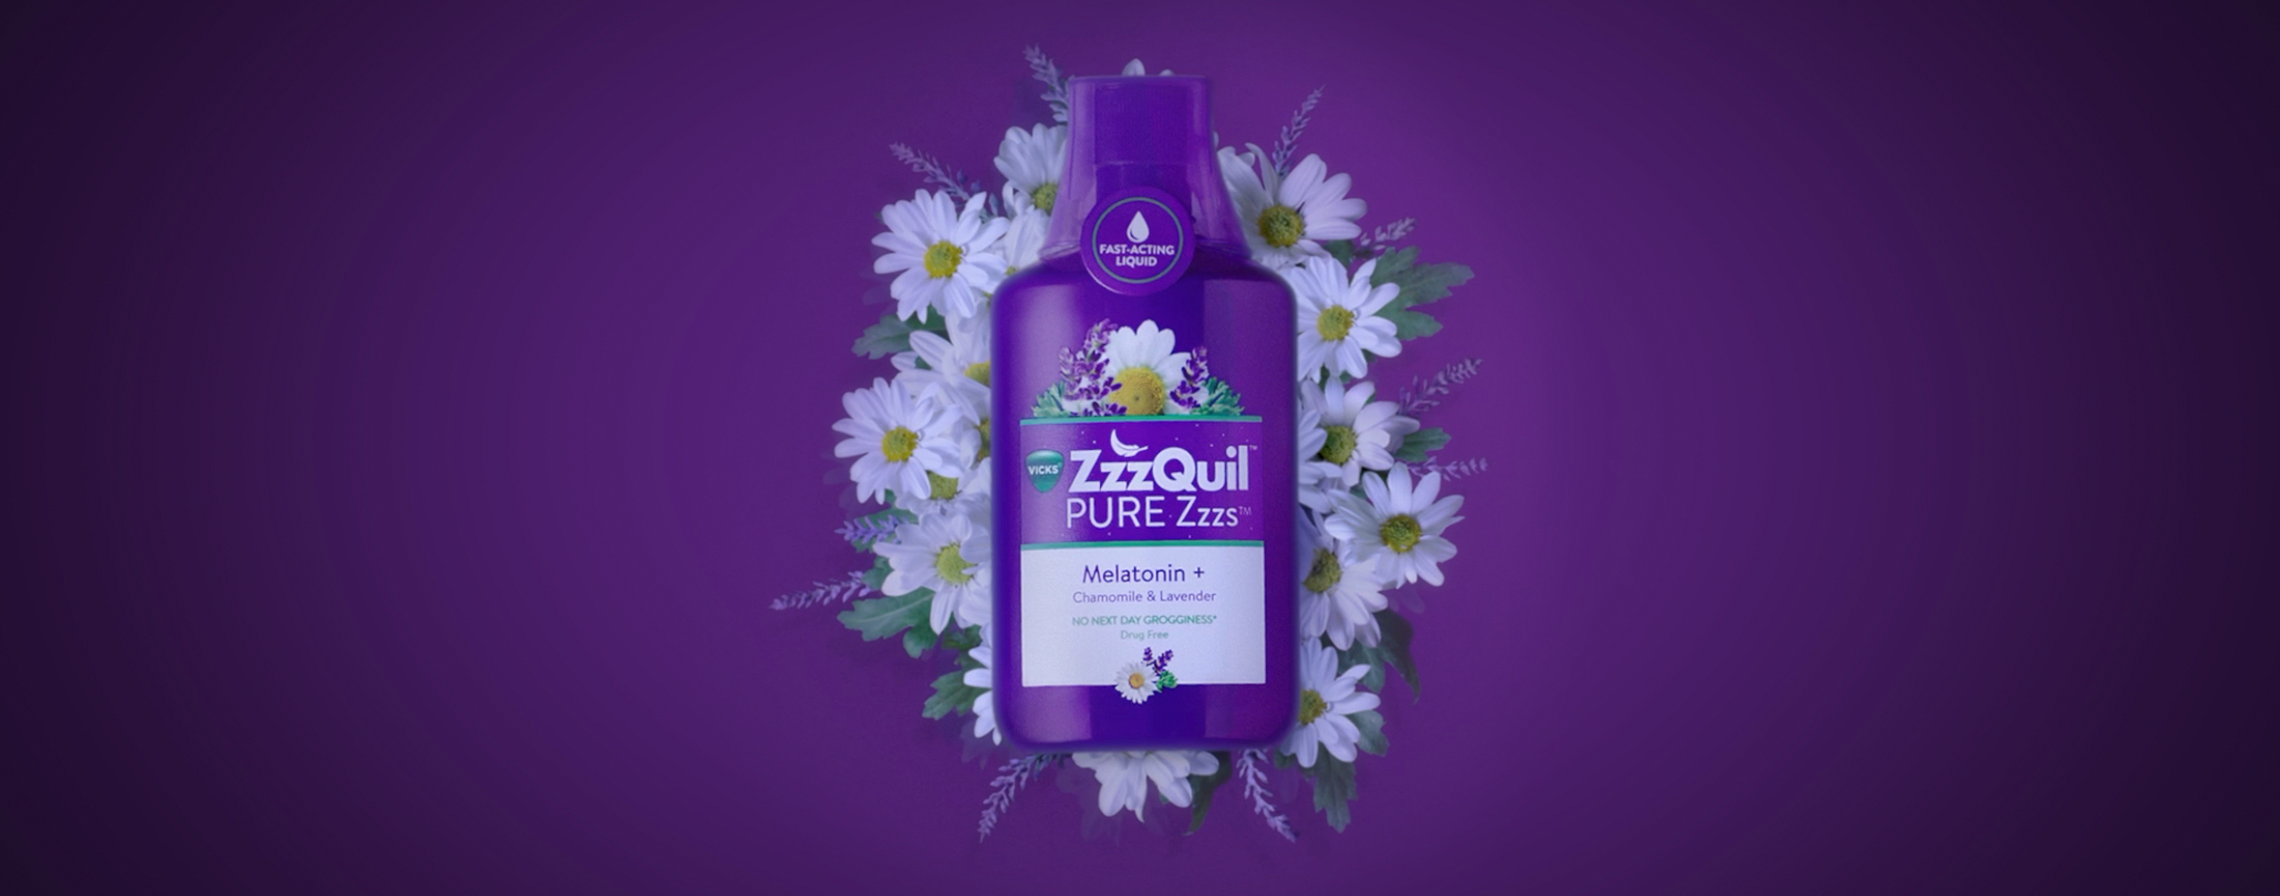 ZZZQUIL -